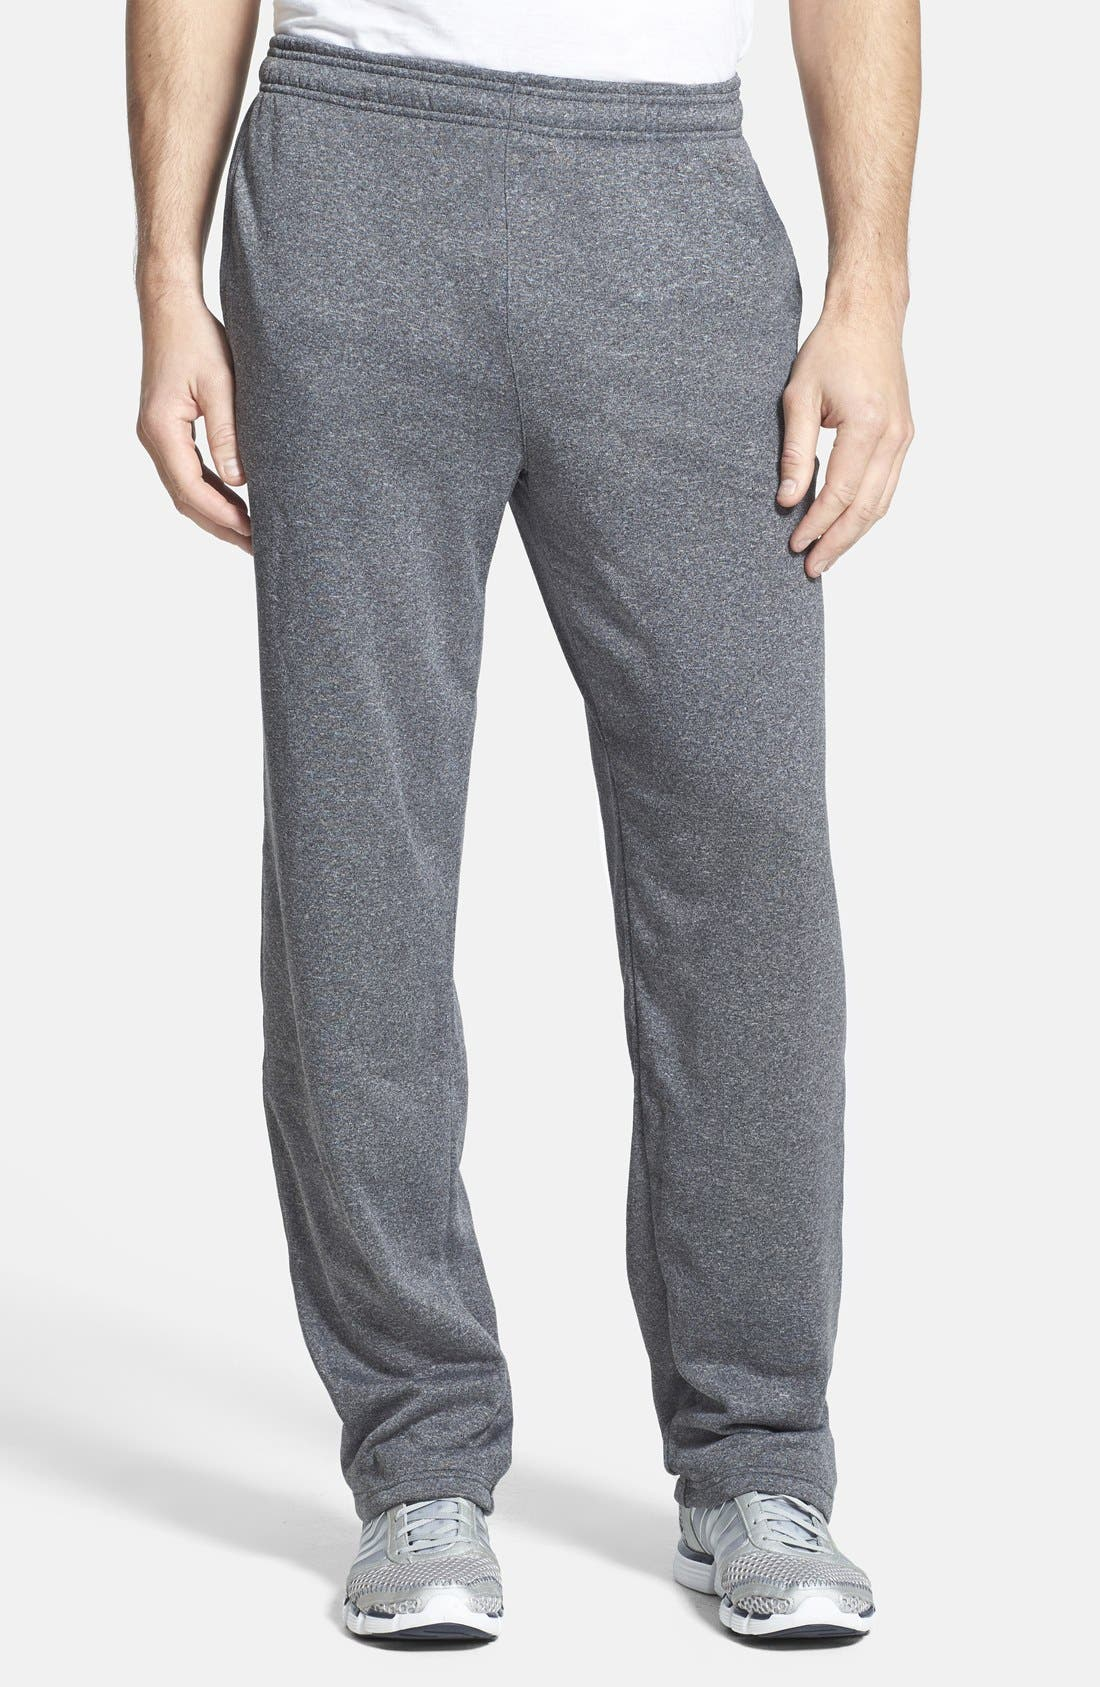 Alternate Image 1 Selected - adidas 'Ultimate' Fleece Pants